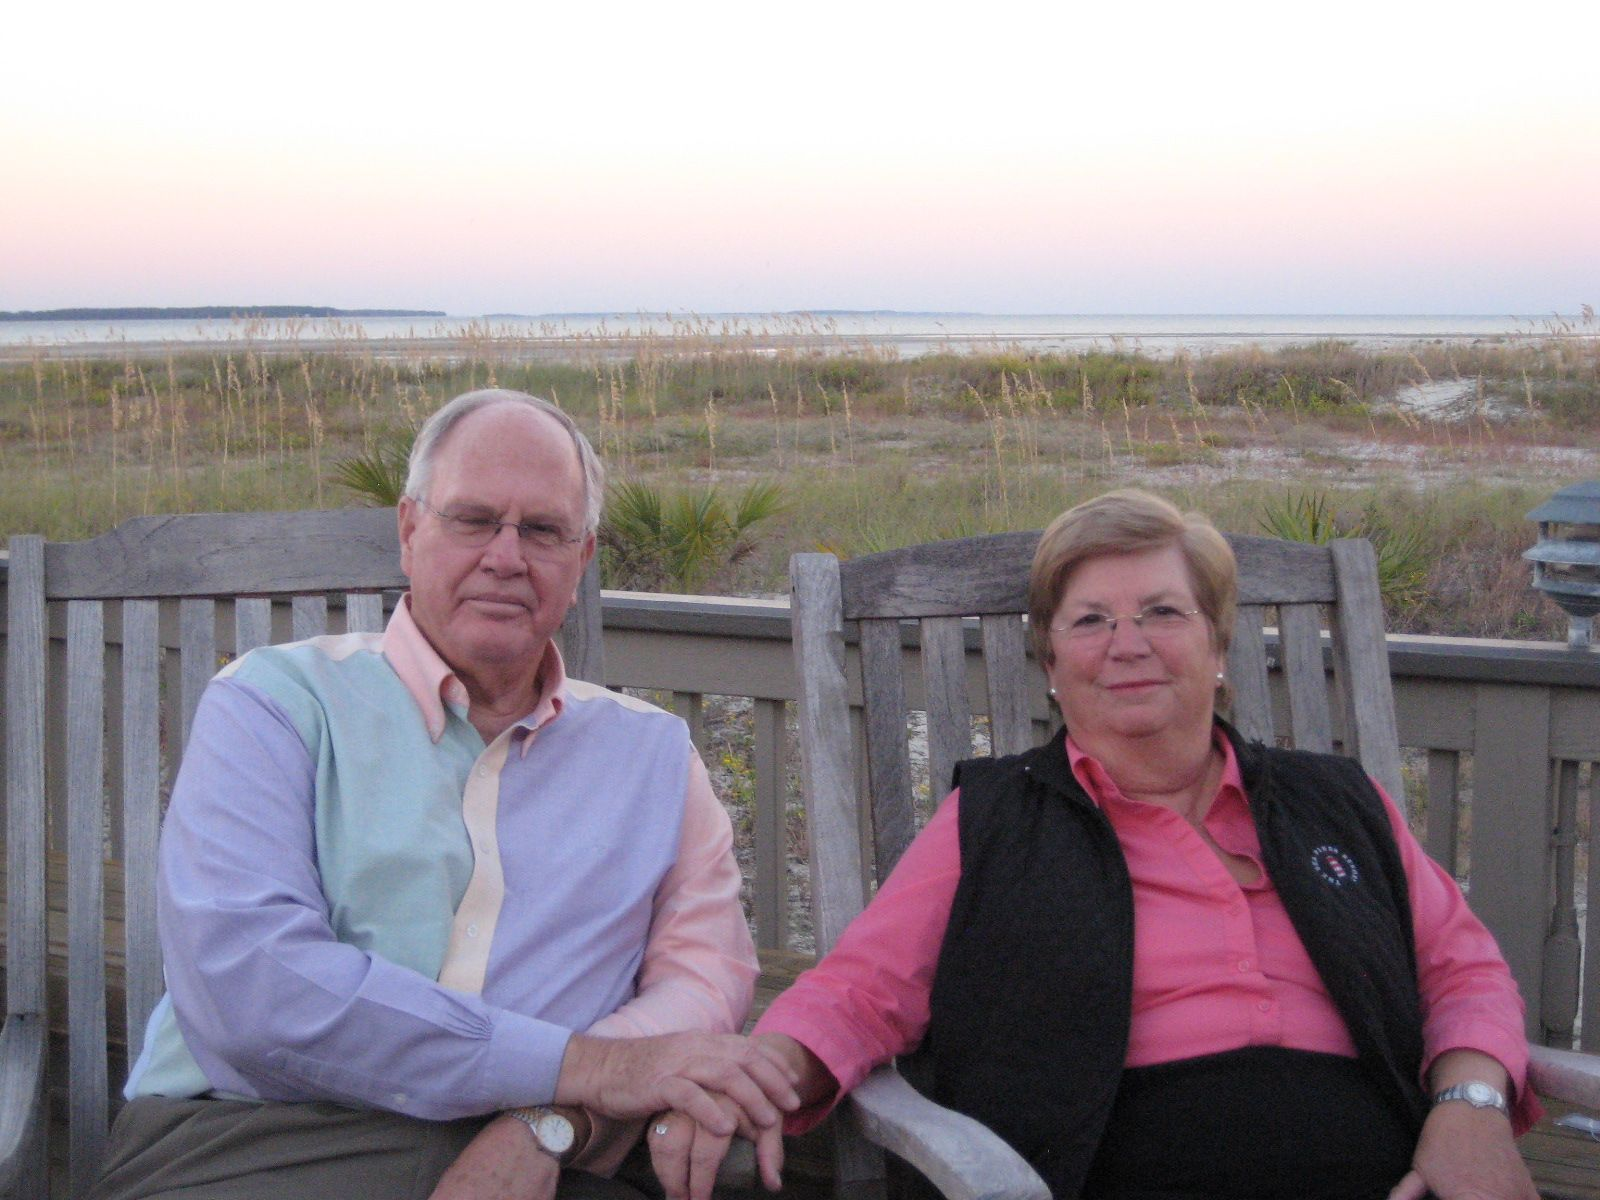 Marriett and Gil Campbell '63 in Hilton Head, SC -  October 23, 2013